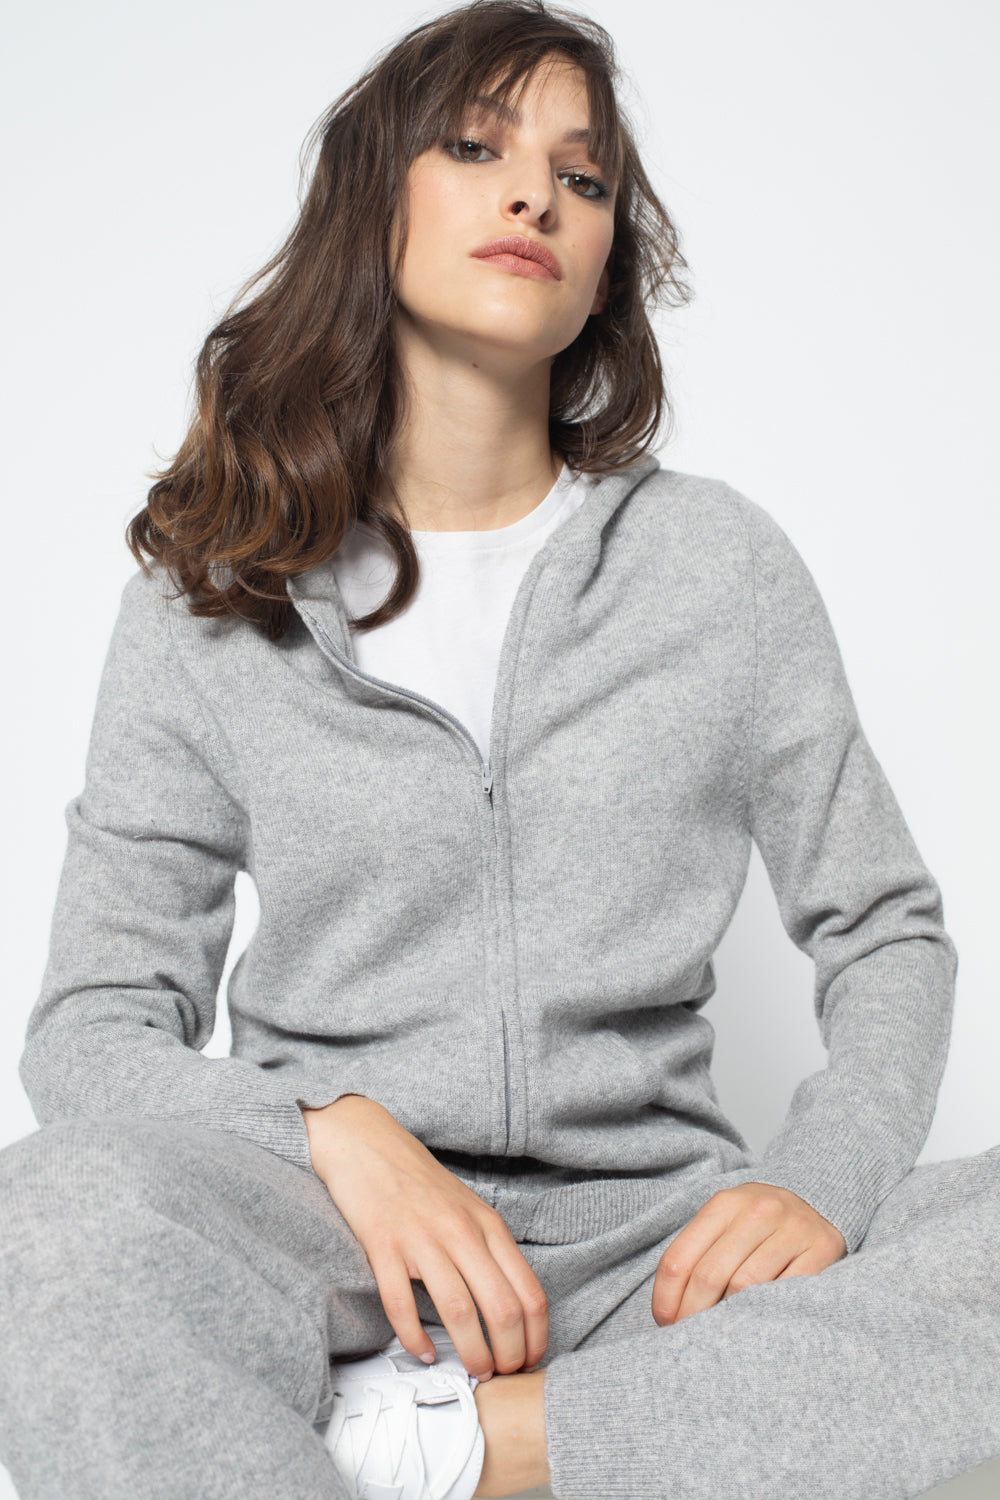 Hoodie COLOMBIS Gris, 100% Cachemire